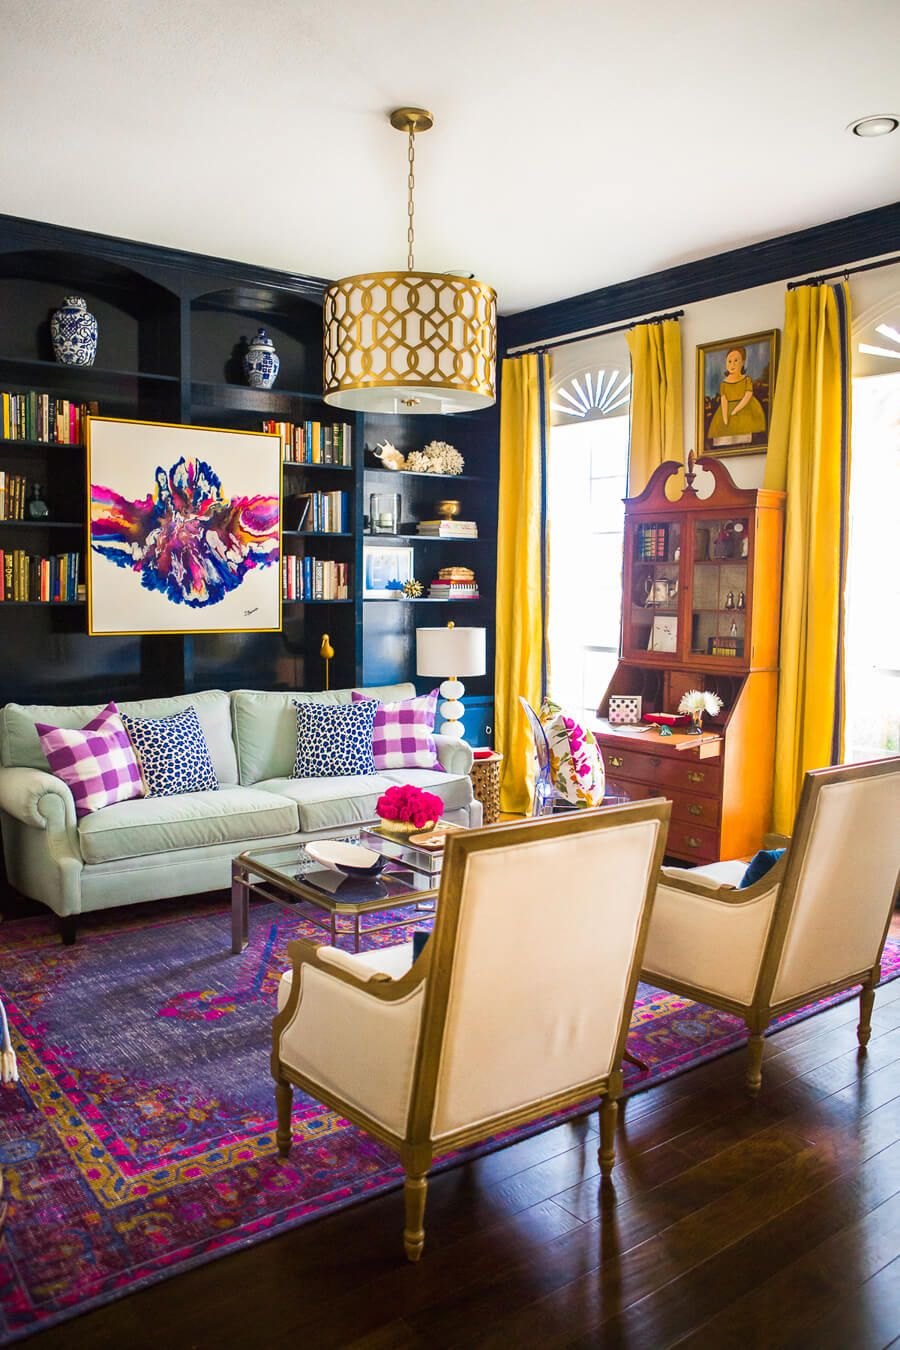 Traditional Decor With A Vibrant Twist Decoratorsbest Blog Living Room Designs House Interior Colourful Living Room